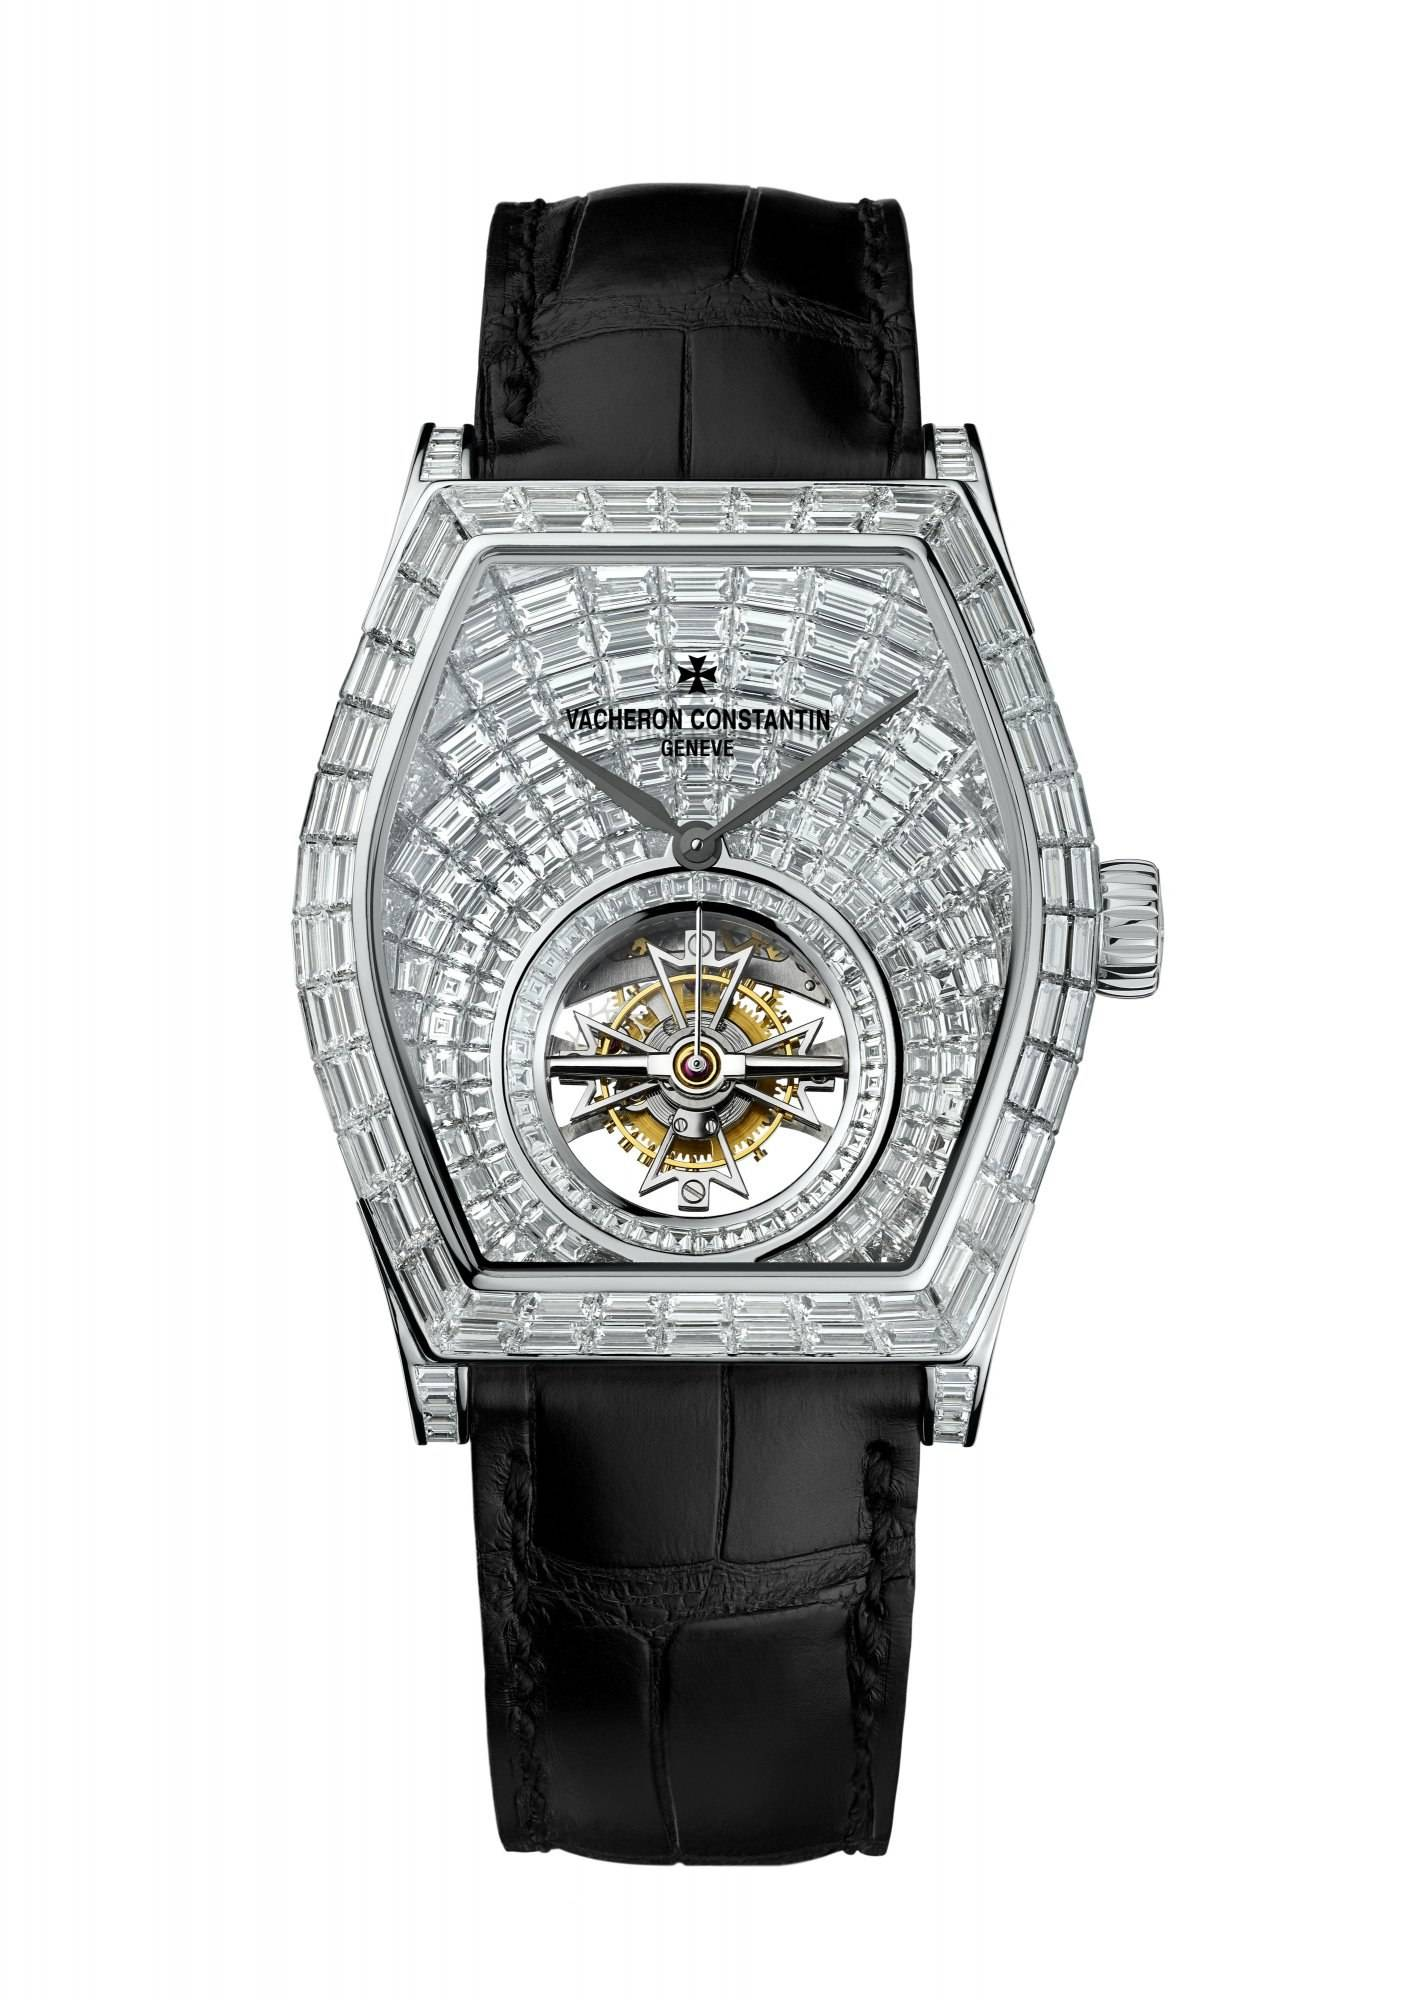 Vacheron Constantin Malte Tourbillon High Jewelry.